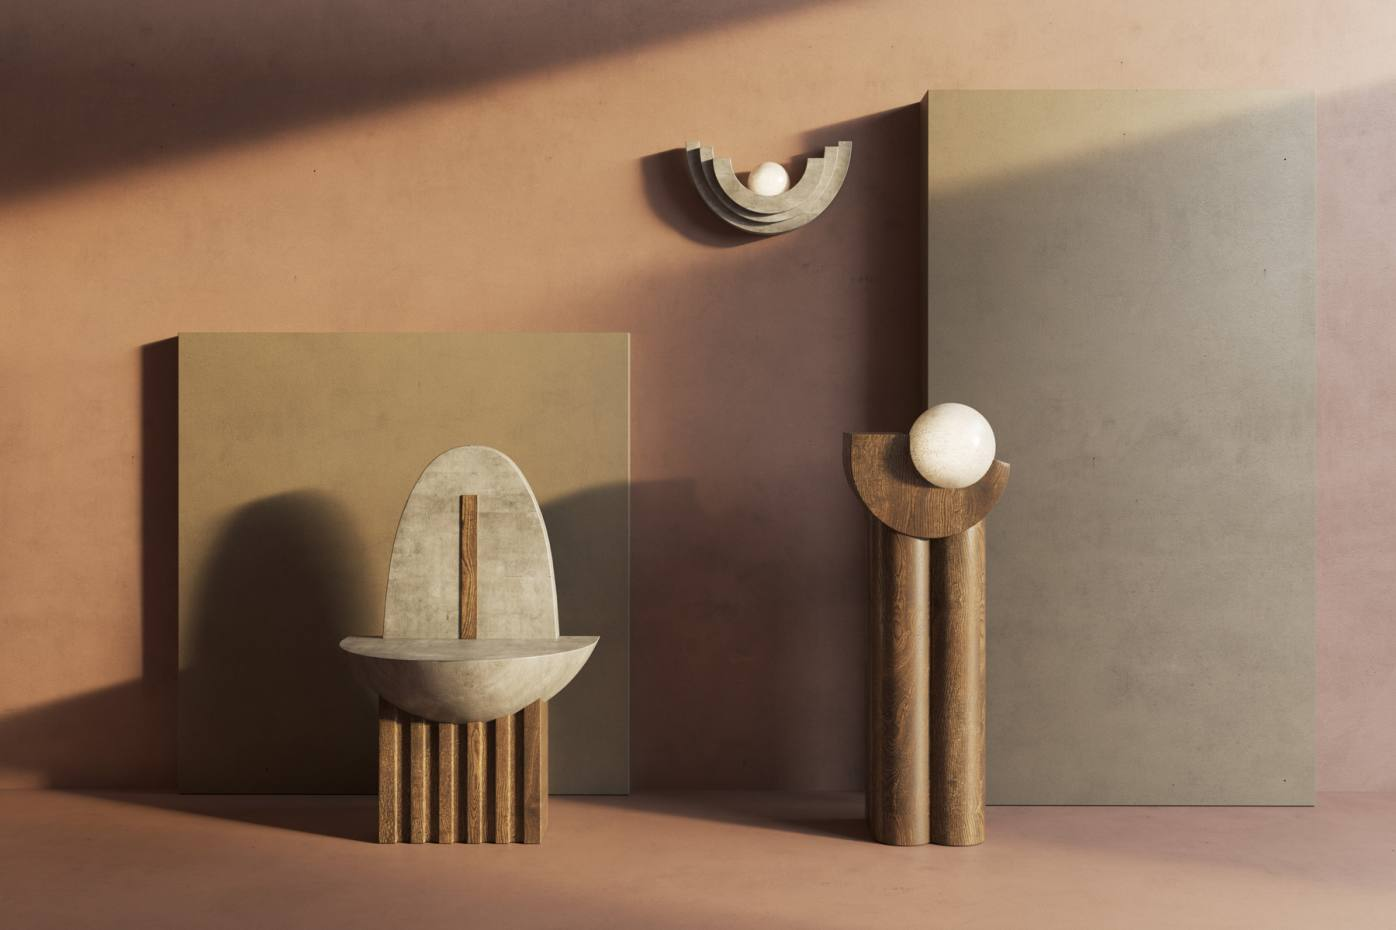 Terra, a sculptural trio including chair, floor and wall lighting, by Llewellyn Chupin